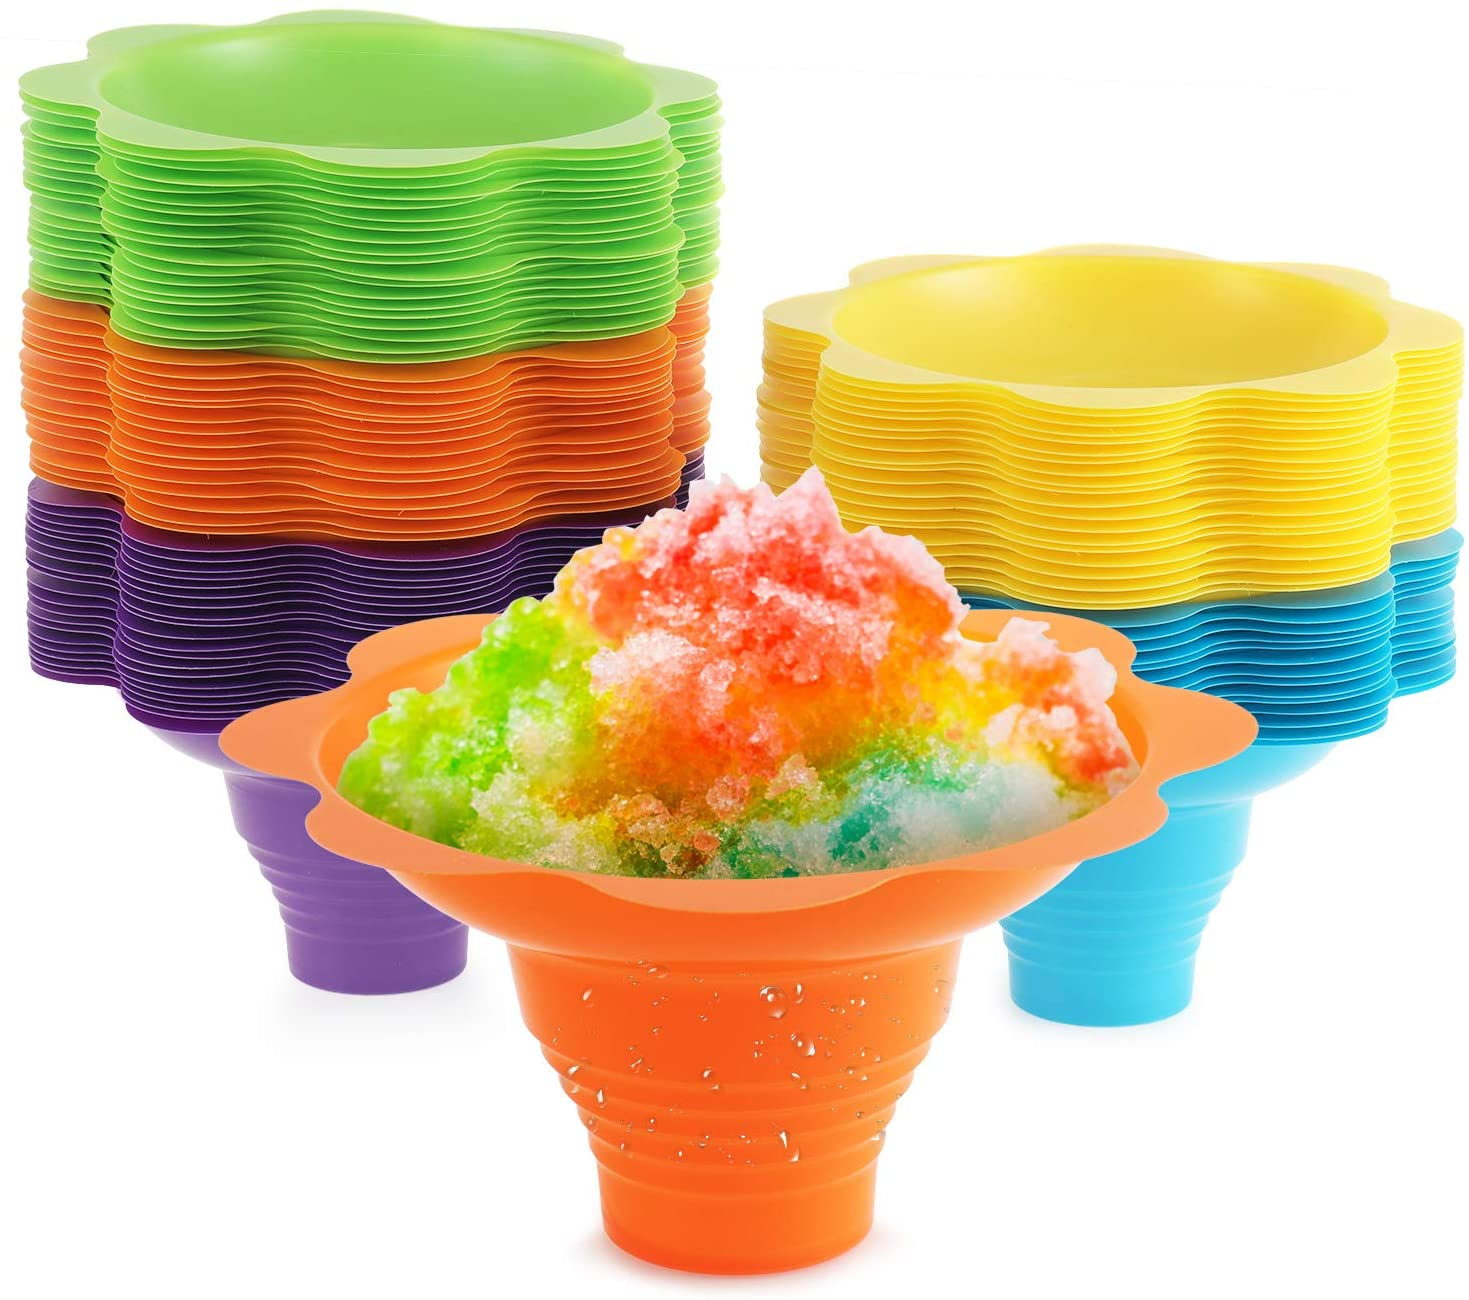 Snow cone cups [25 Pack] Flower Design, Slush cup 5 Assorted Summer Colors Sno-Cone Cup 4 oz, Great For Shaved Ice, Ice Cream